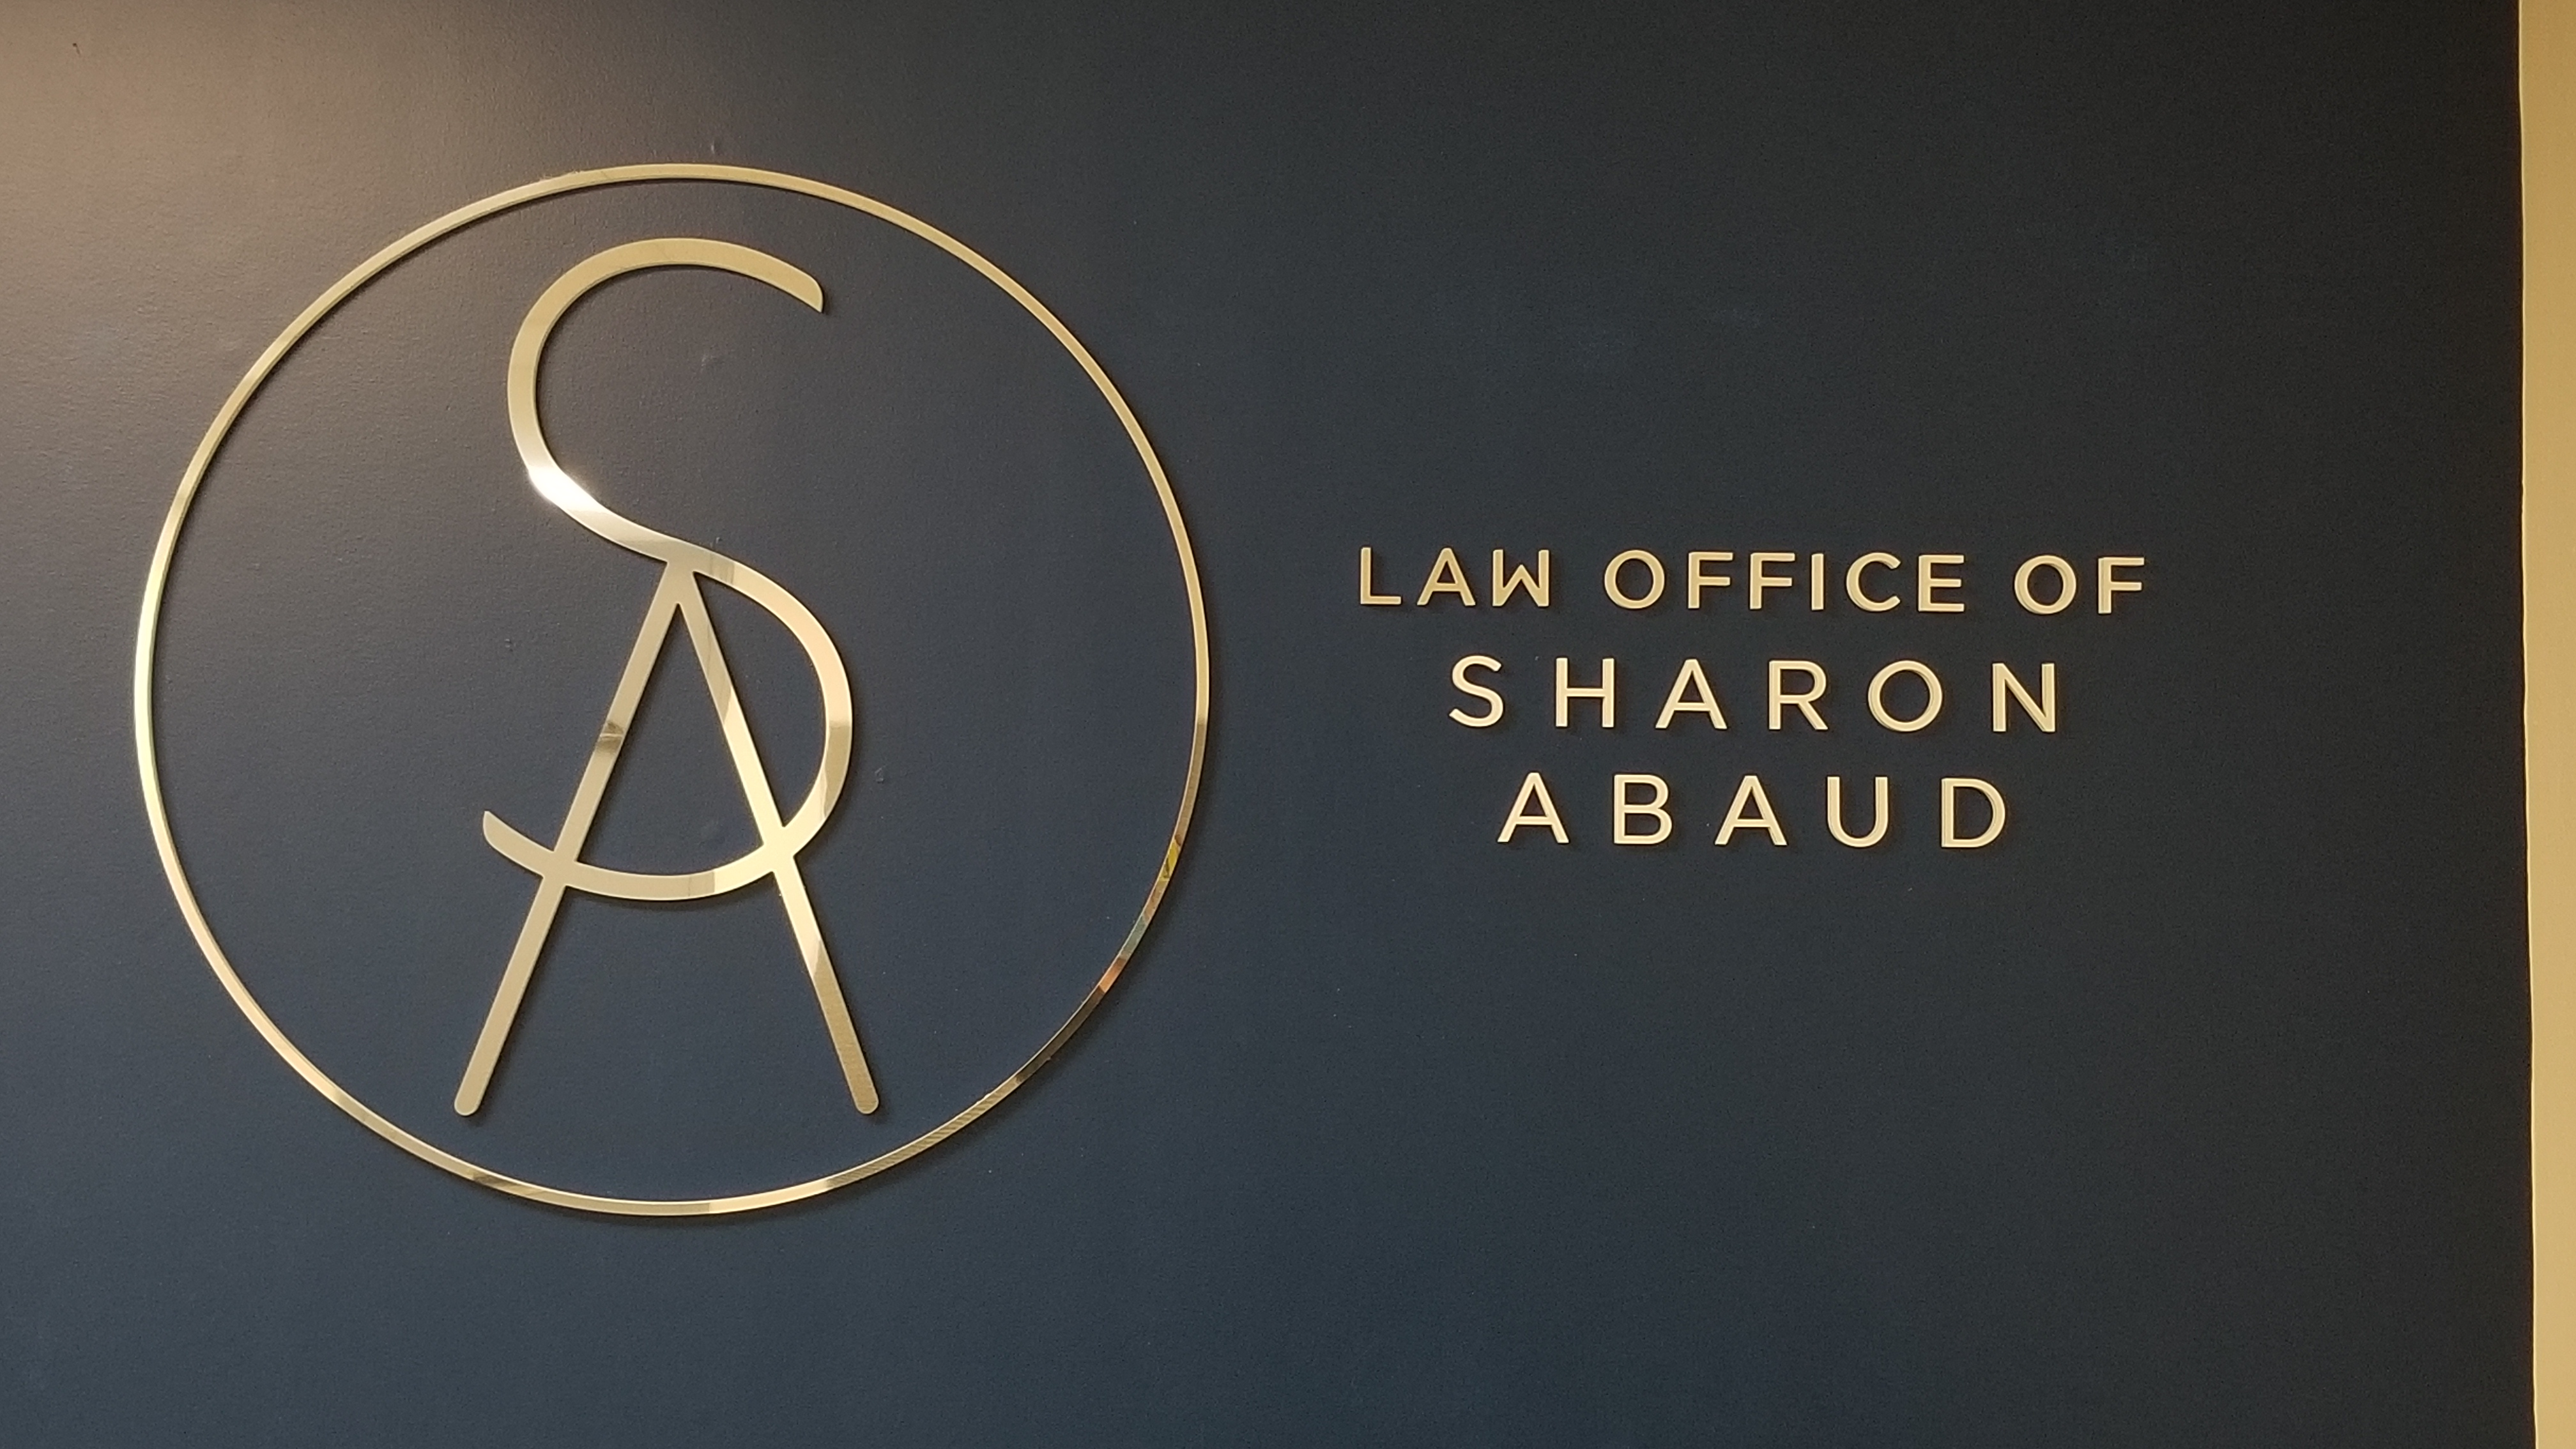 This is the laser-cut acrylic lobby sign we made for the Torrance law office of immigration lawyer Sharon Abaud.